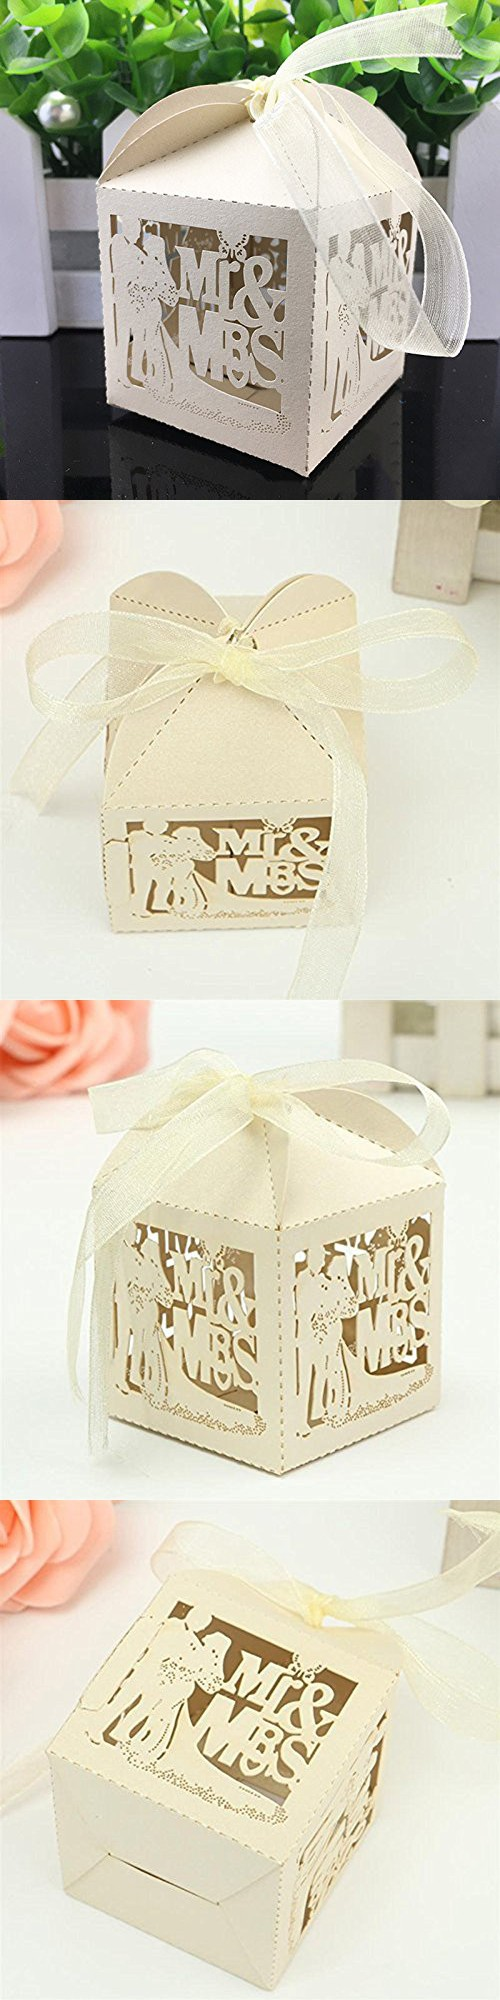 PONATIA 50pcs/Lot Mr & Mrs Wedding Candy Box Sweets Gift Favor Boxes ...